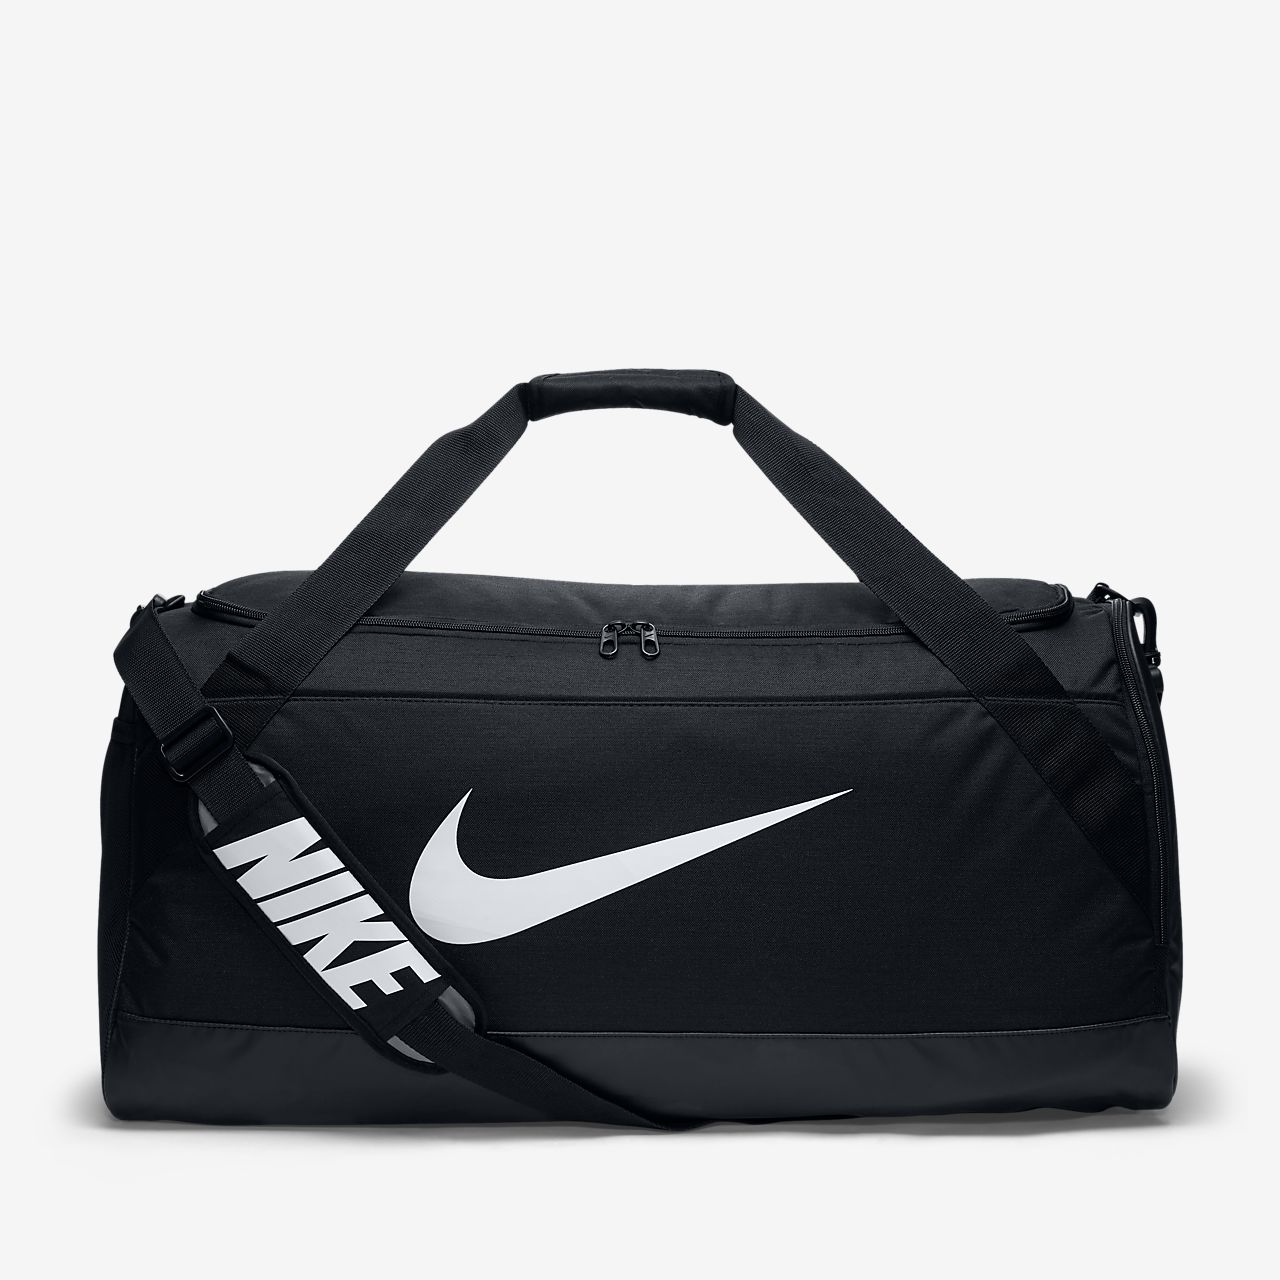 74299ec2cd9d Nike Brasilia (Large) Training Duffel Bag. Nike.com AU